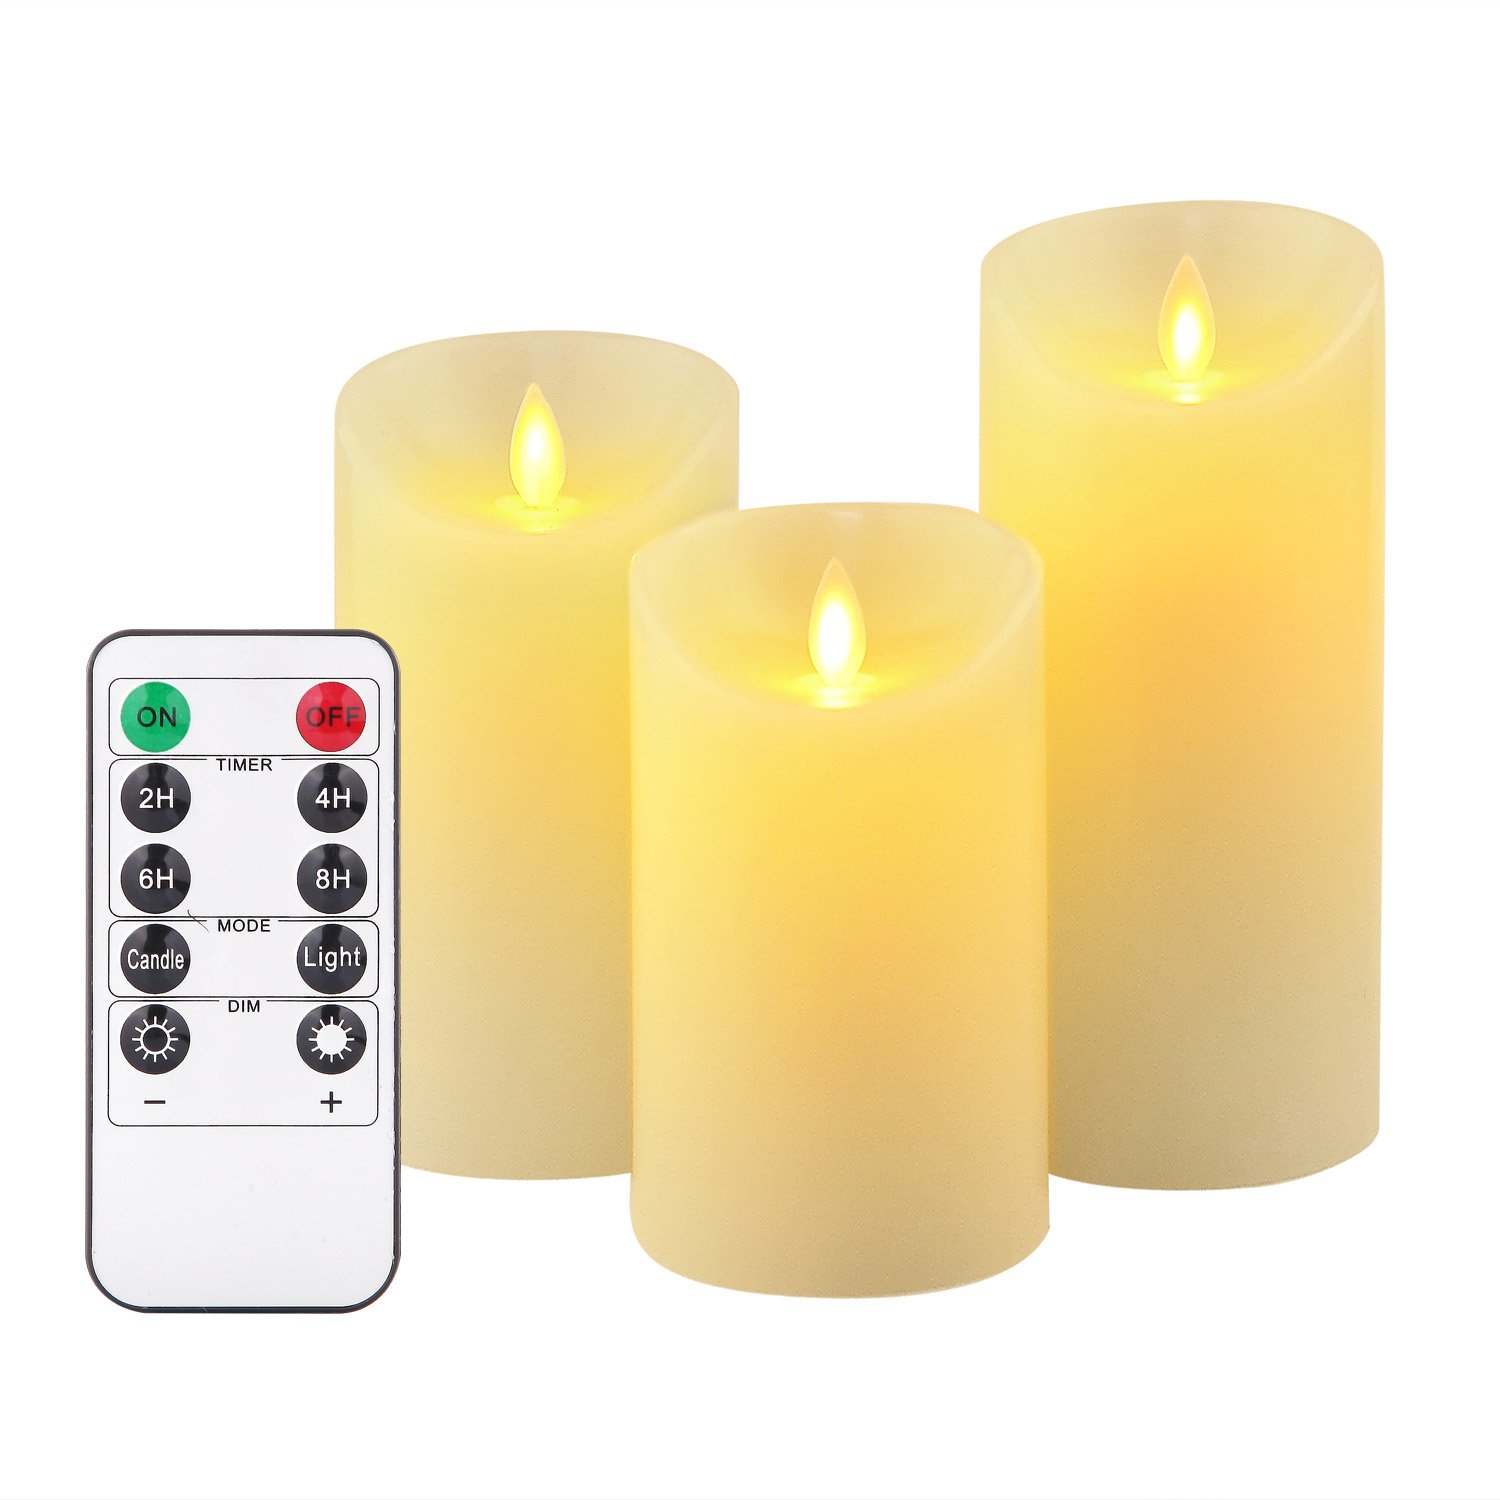 OSHINE Flameless Candles LED Candles Set of 4 5 6 H 3.15 D Flickering Flame with Remote and Timer Real Wax Pillar | Bathroom Kitchen Home Decoration | 10 Key Control | Reusable 31 Ivory 31